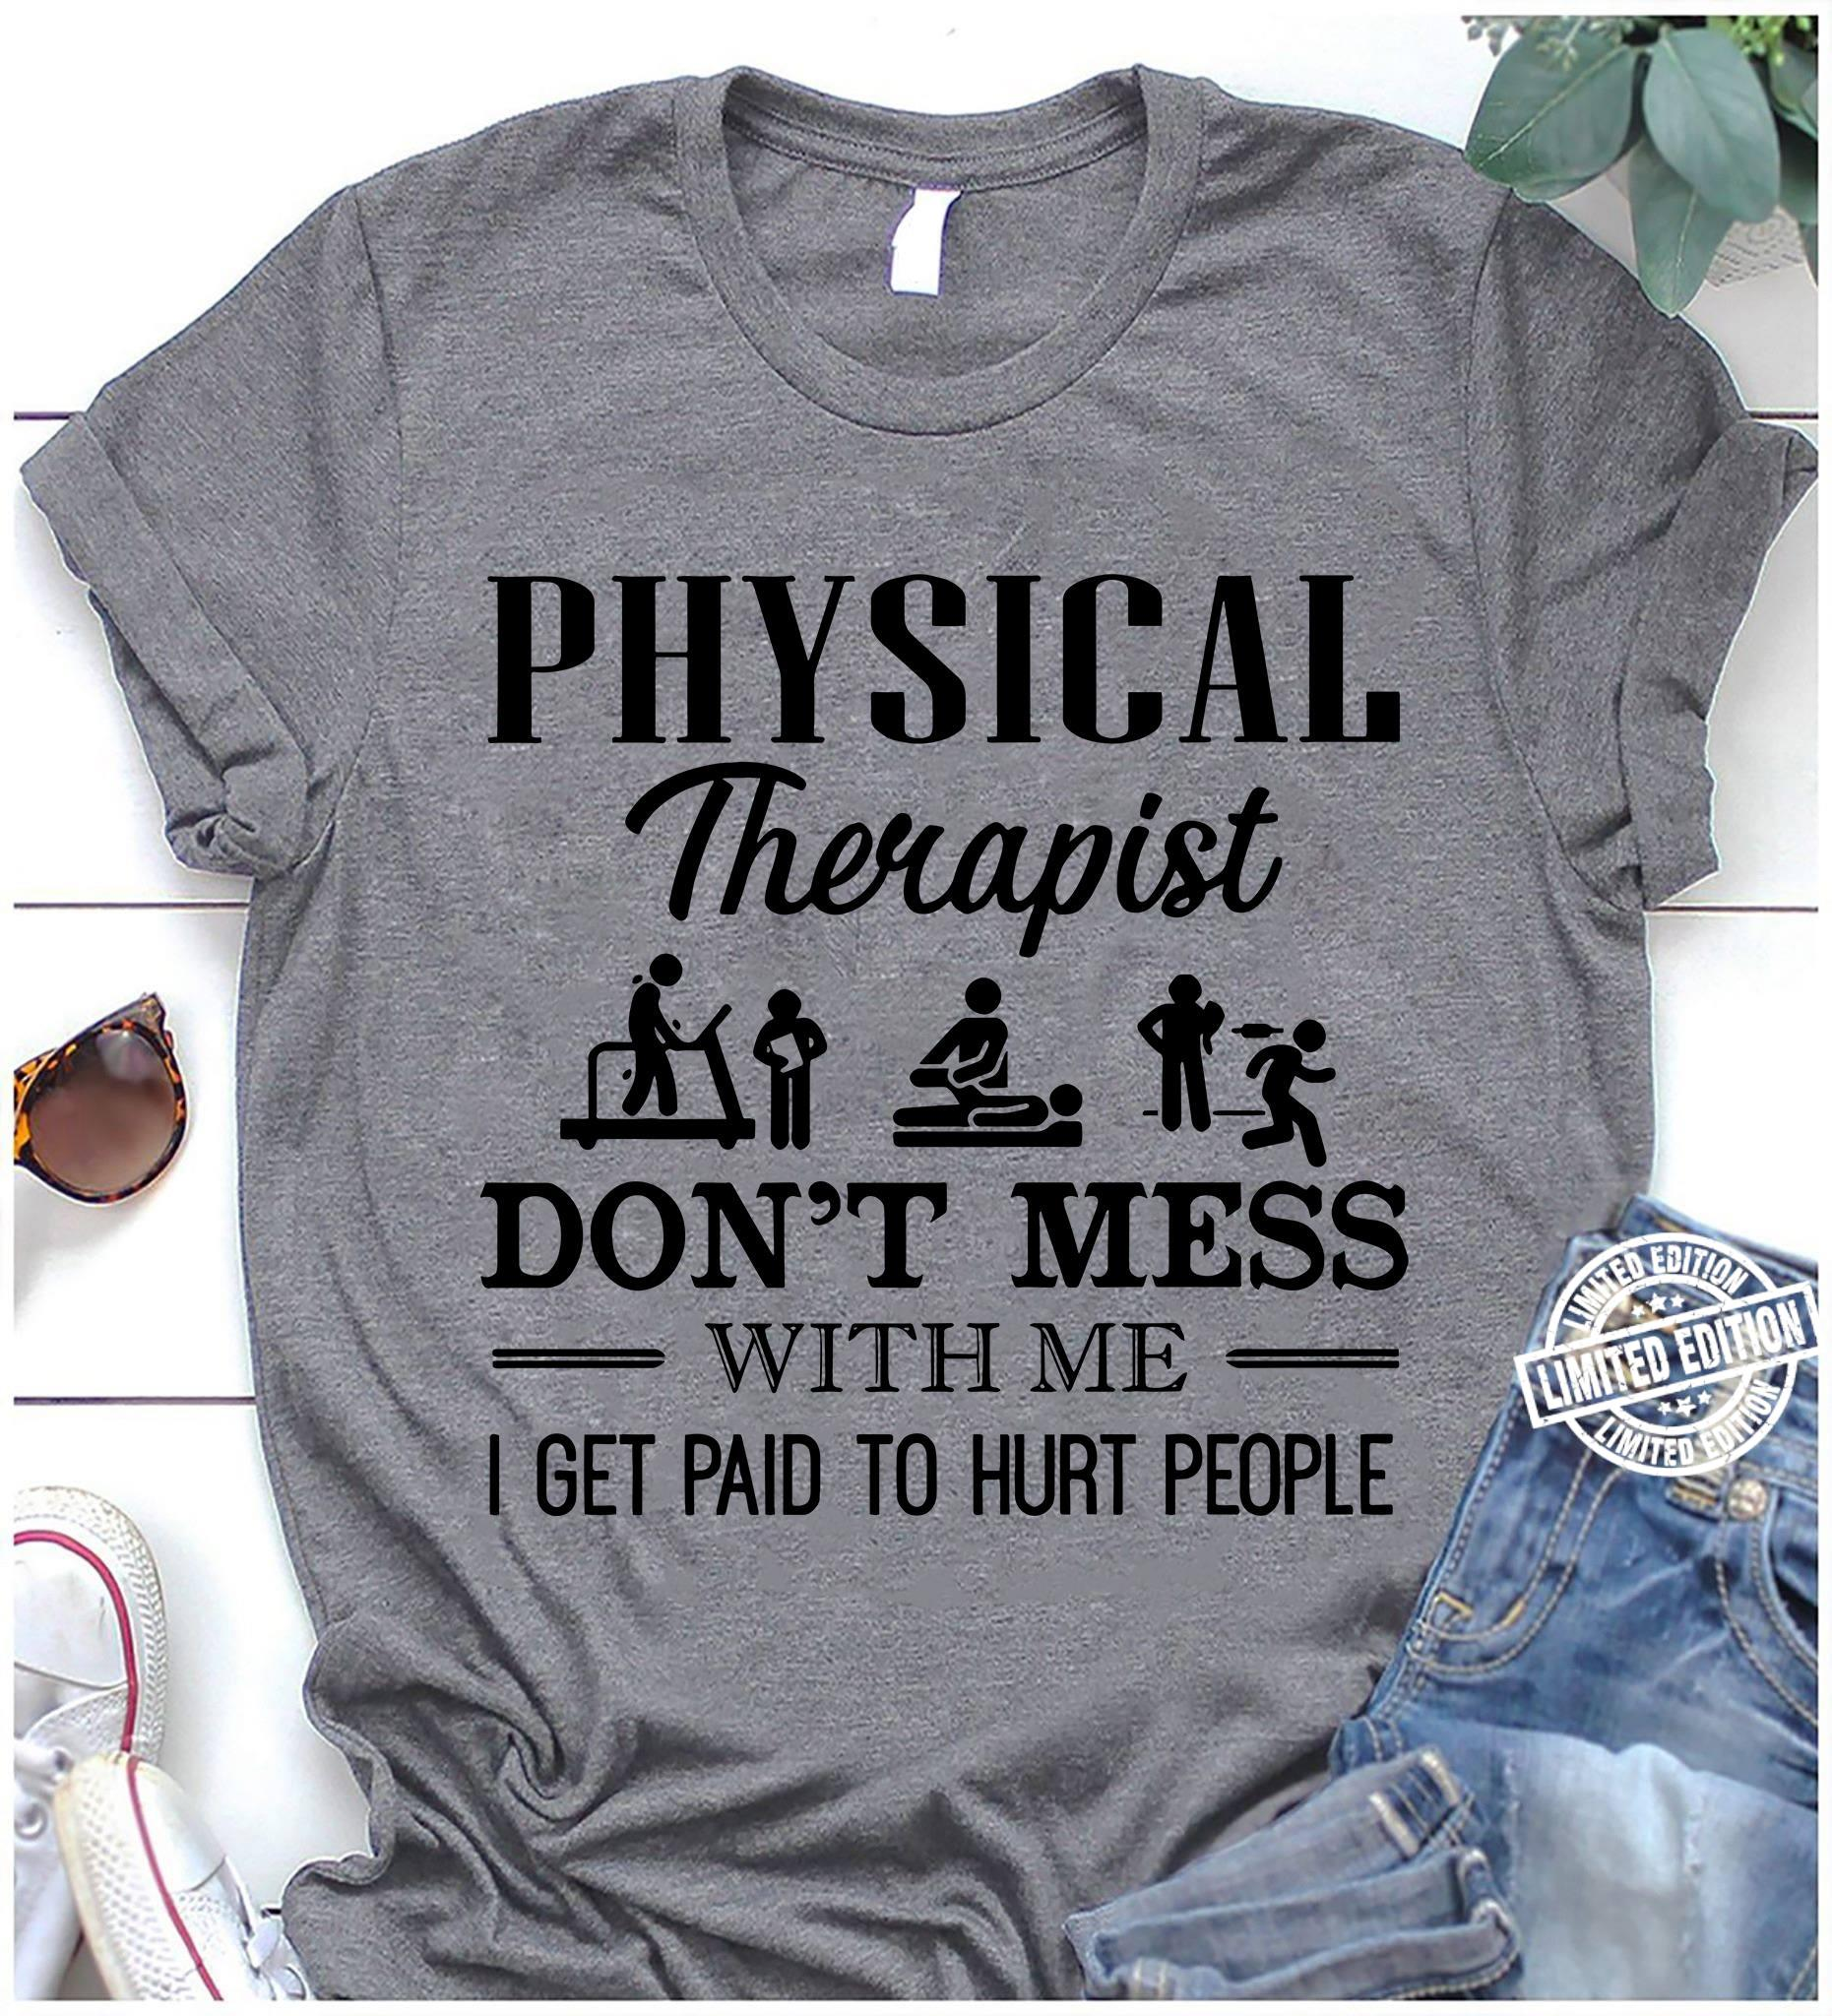 Physical therapist don't mess with me i get paid to hurt people shirt